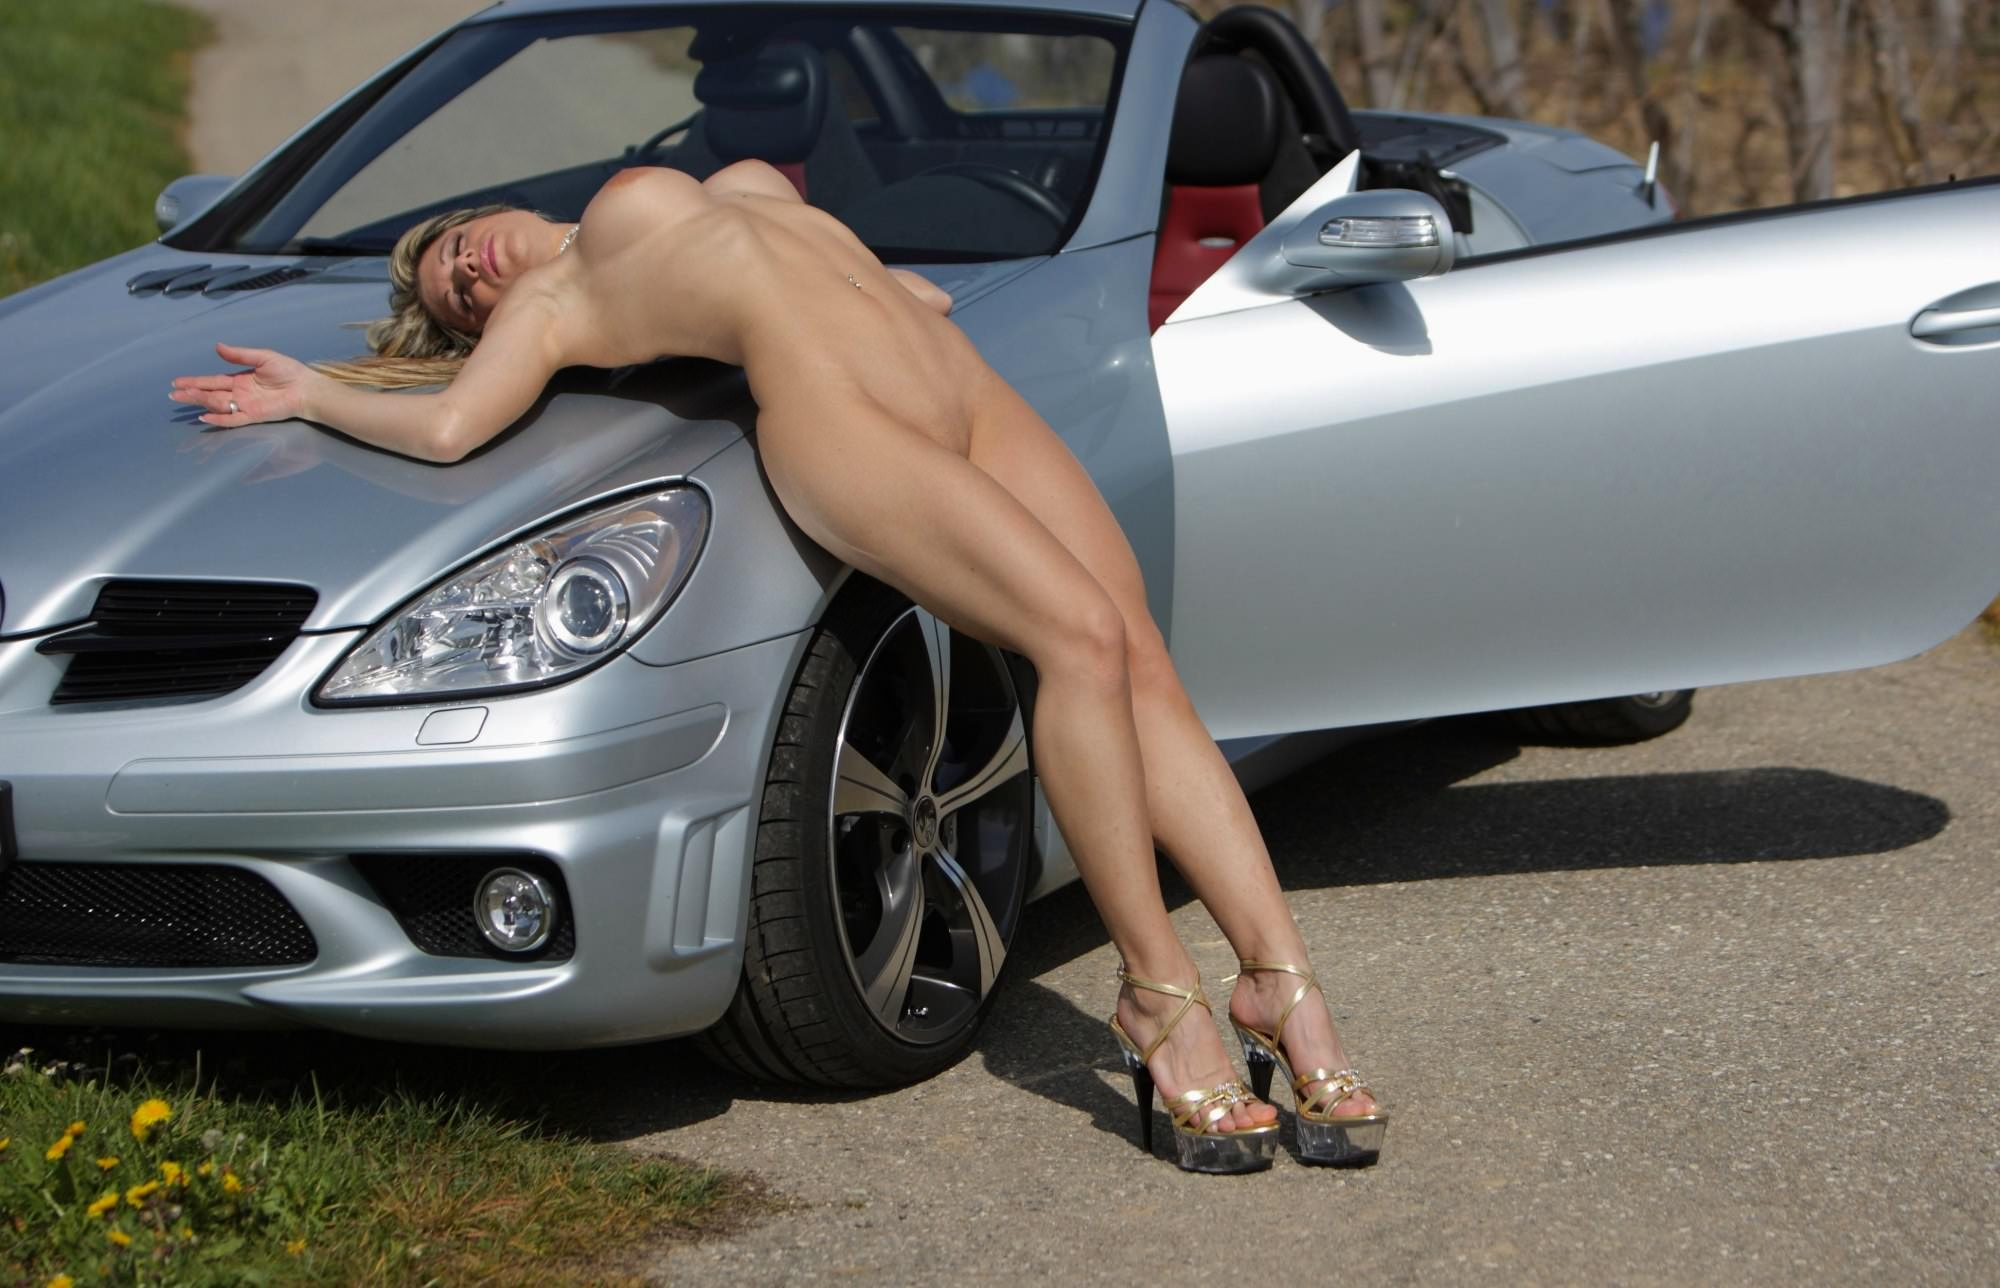 Naked Girls Bending Over Cars